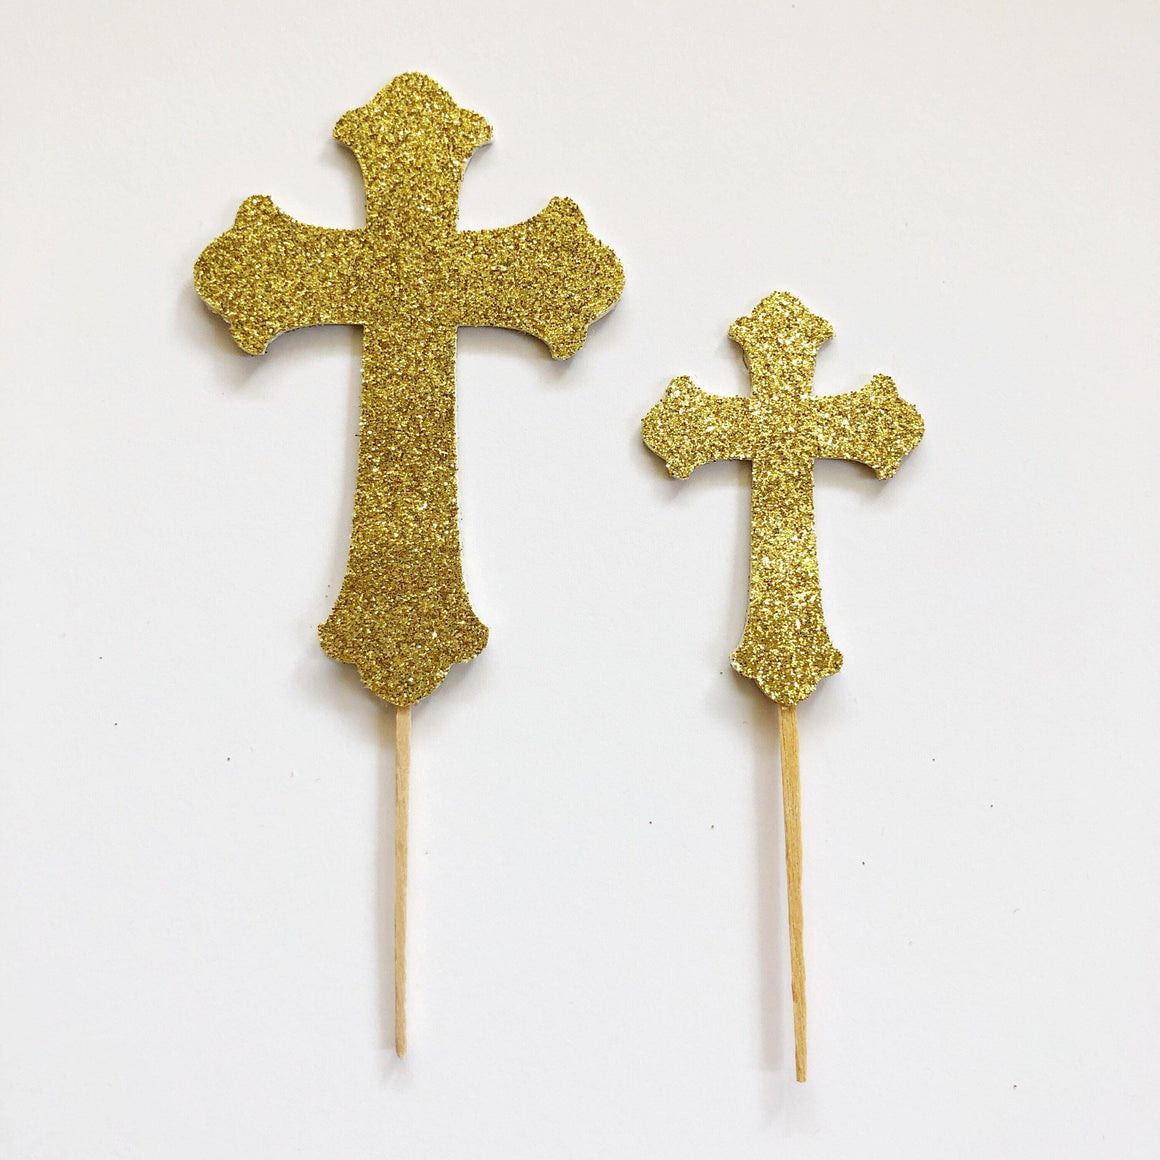 PARTY PICKS - CROSS GLITTER LARGE 2-SIDED